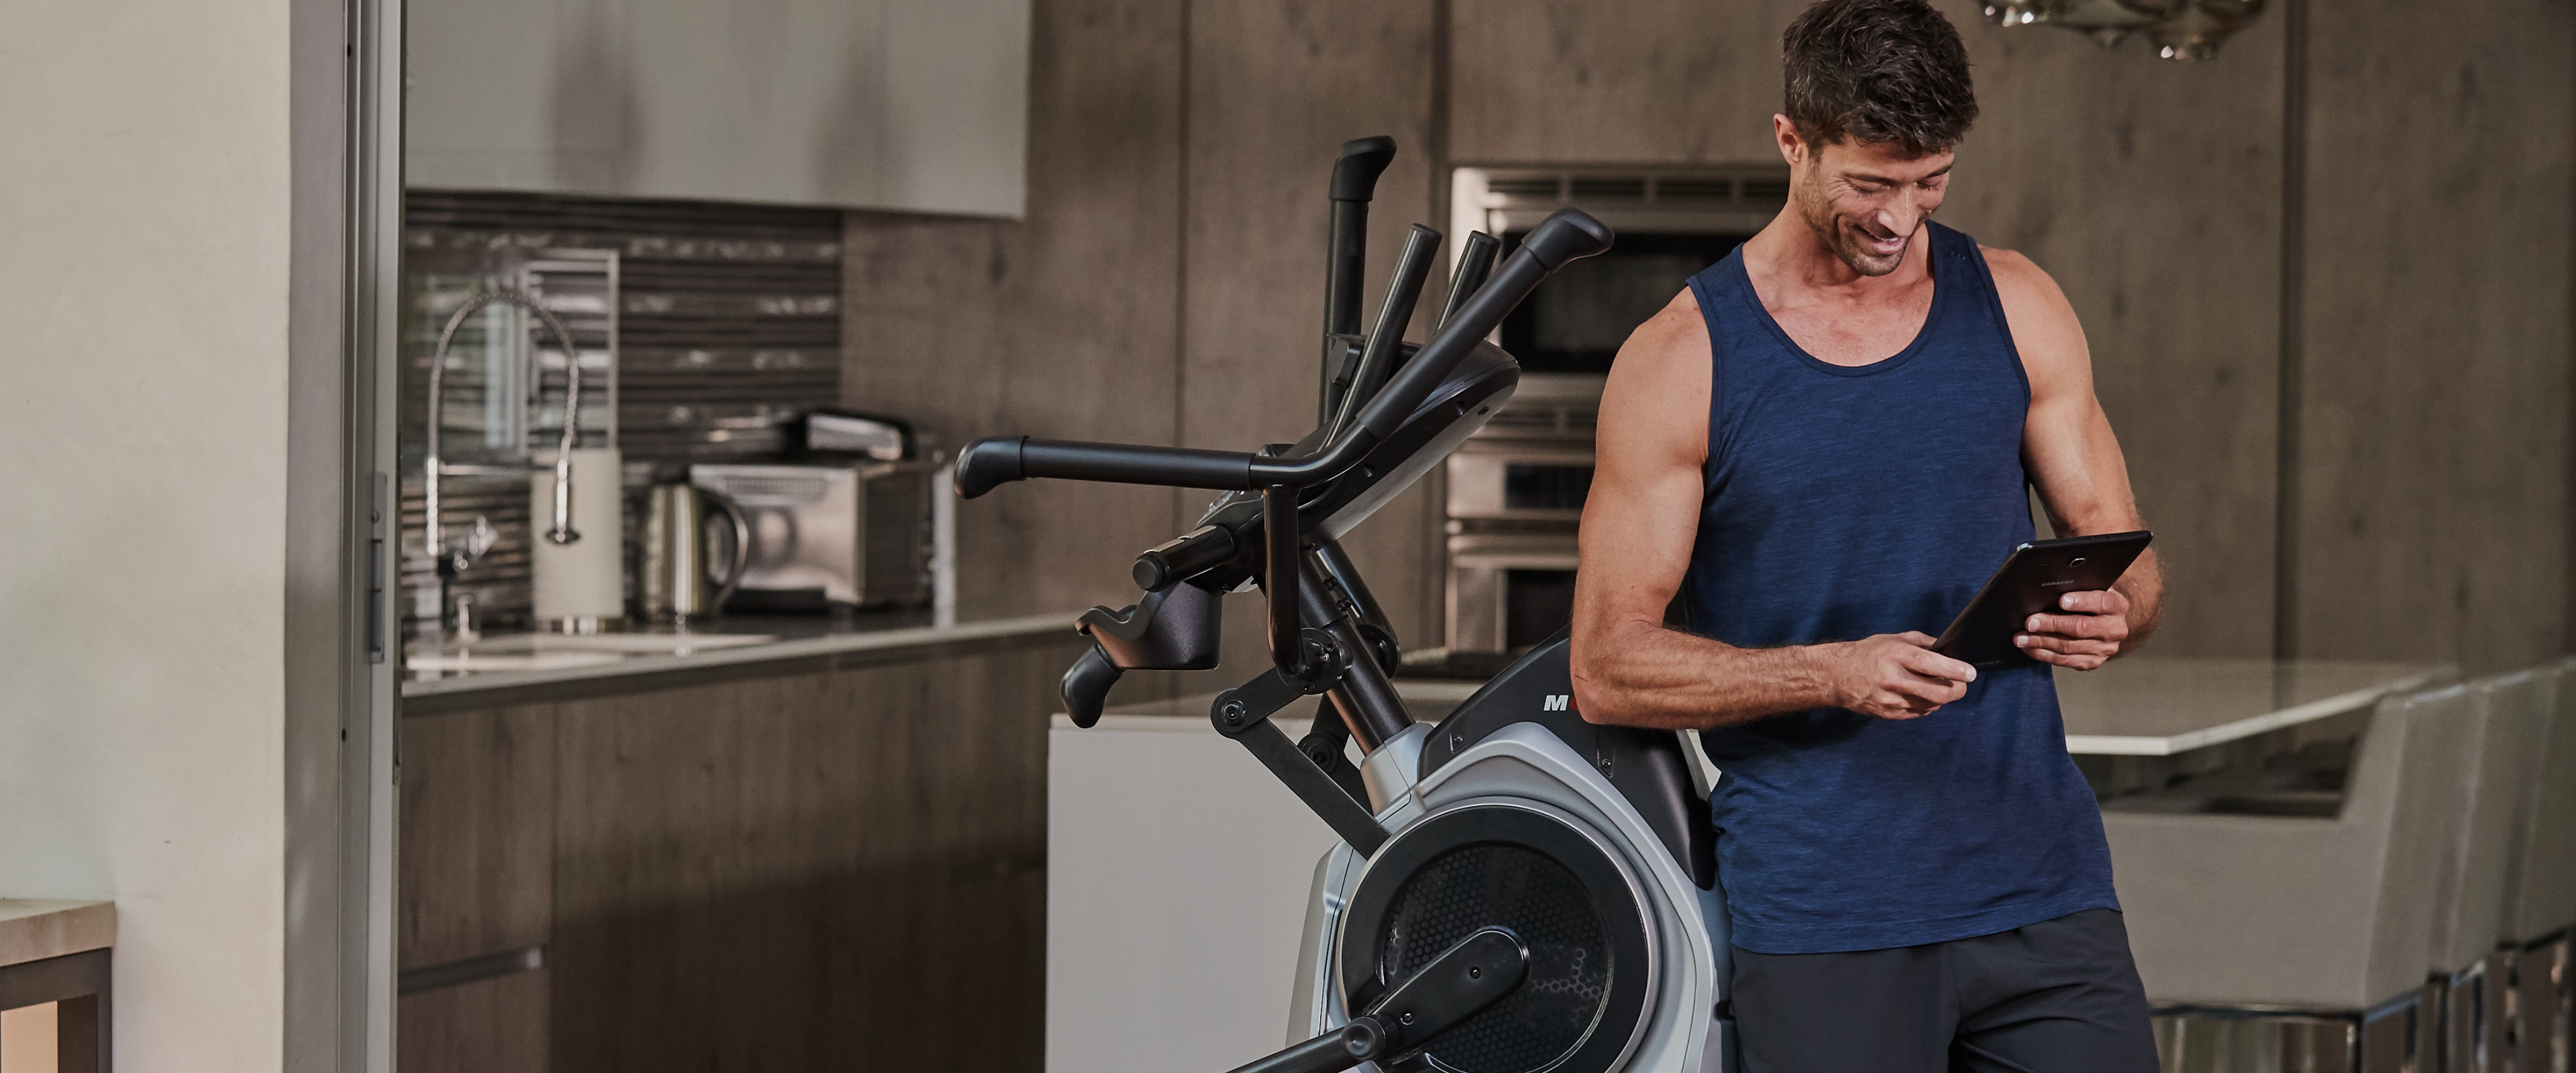 Man using a Bowflex Max Trainer M6